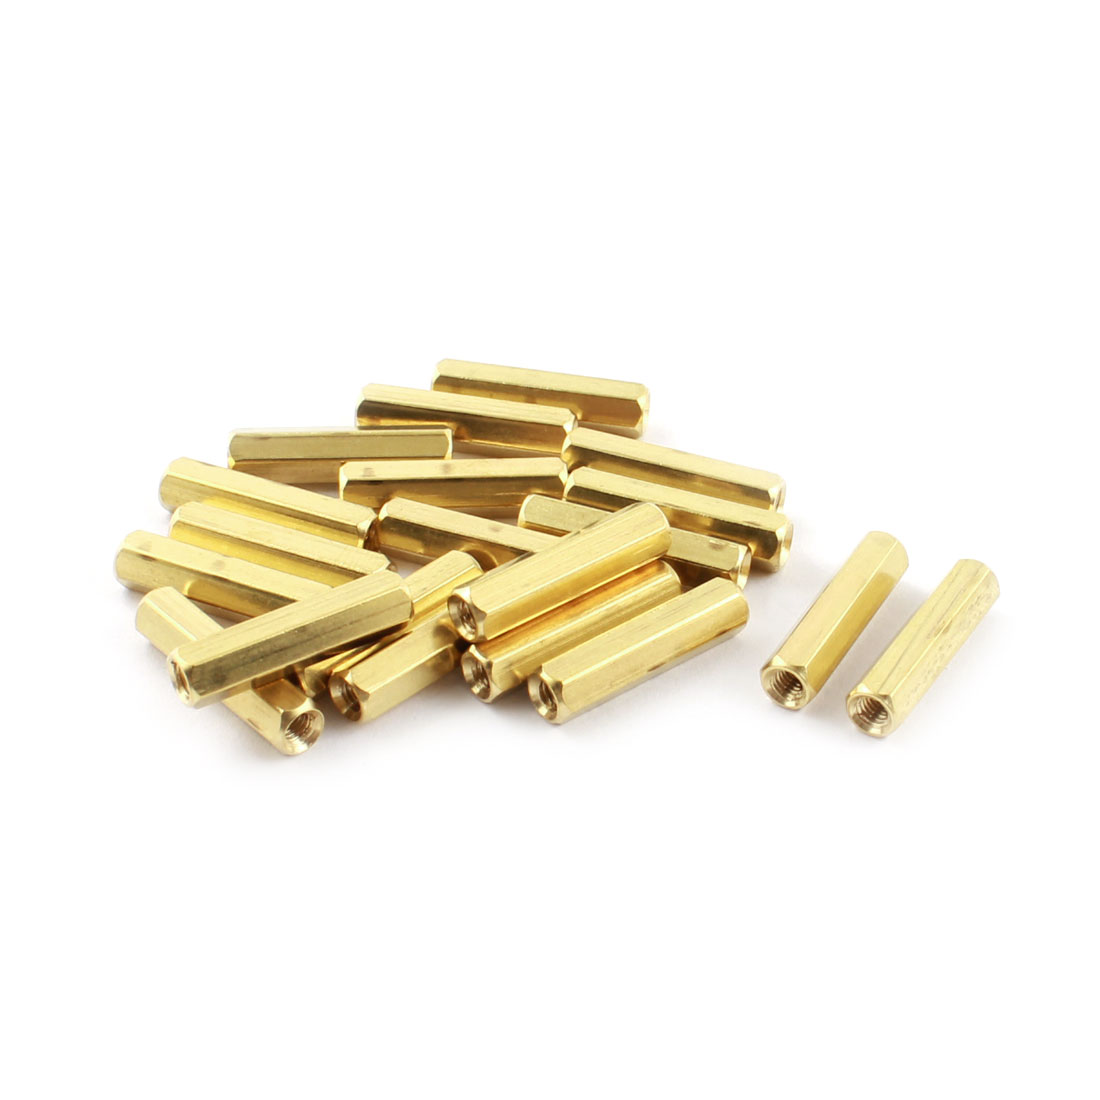 20 Pcs M3 x 20mm Female Thread Dual Ends Gold Tone Brass Pillar PCB Standoff Hexagonal Nut Spacer